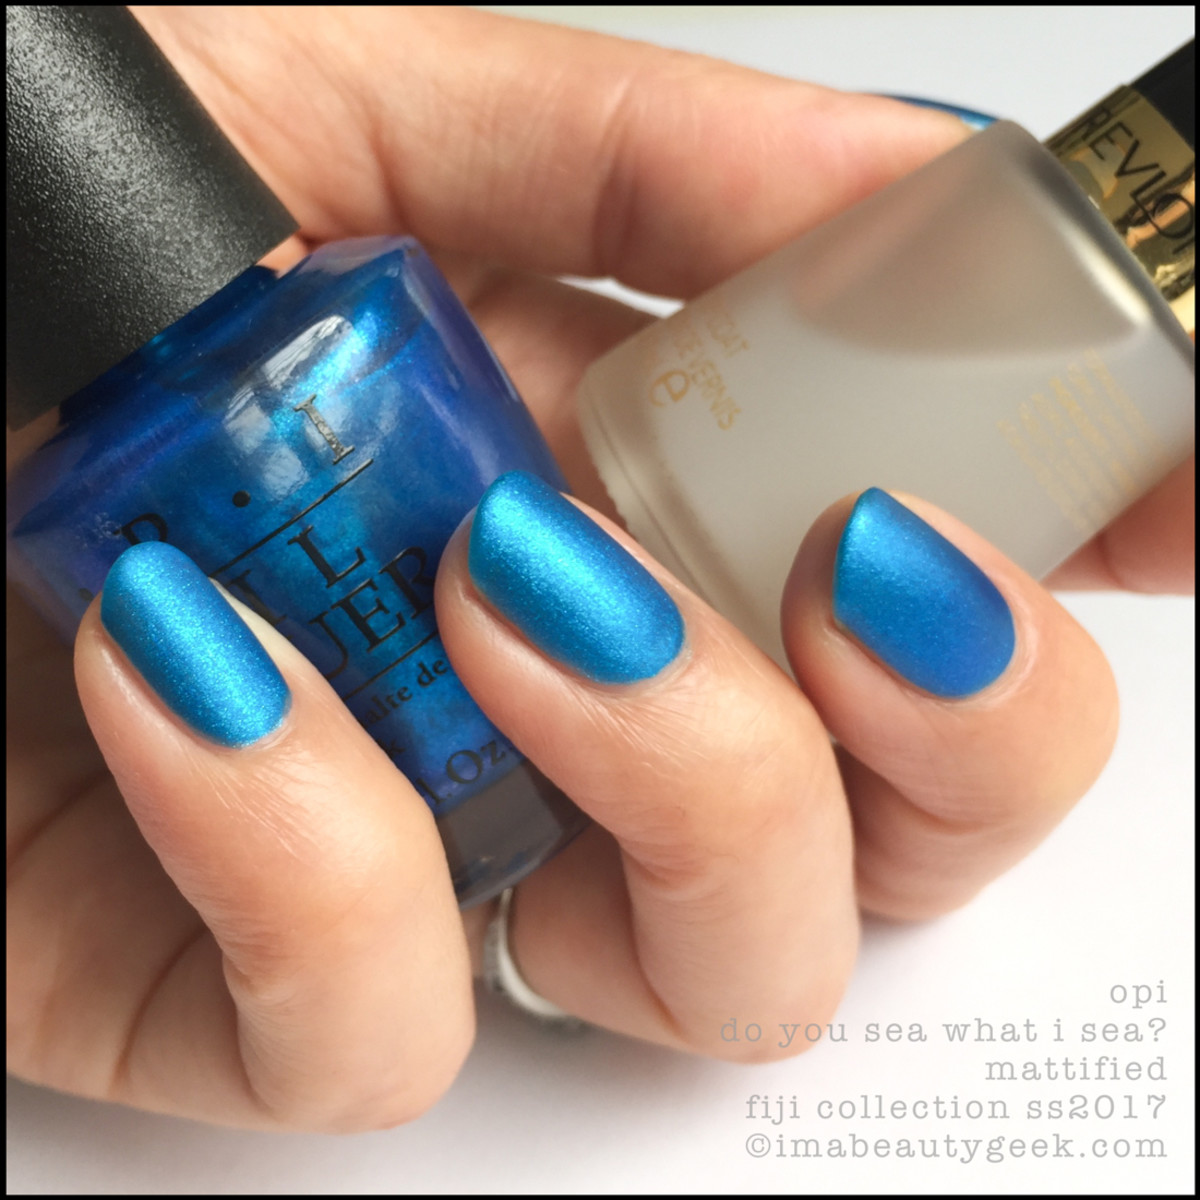 OPI Do You Sea What I Sea? Mattified_OPI Fiji Collection Swatches Review 2017